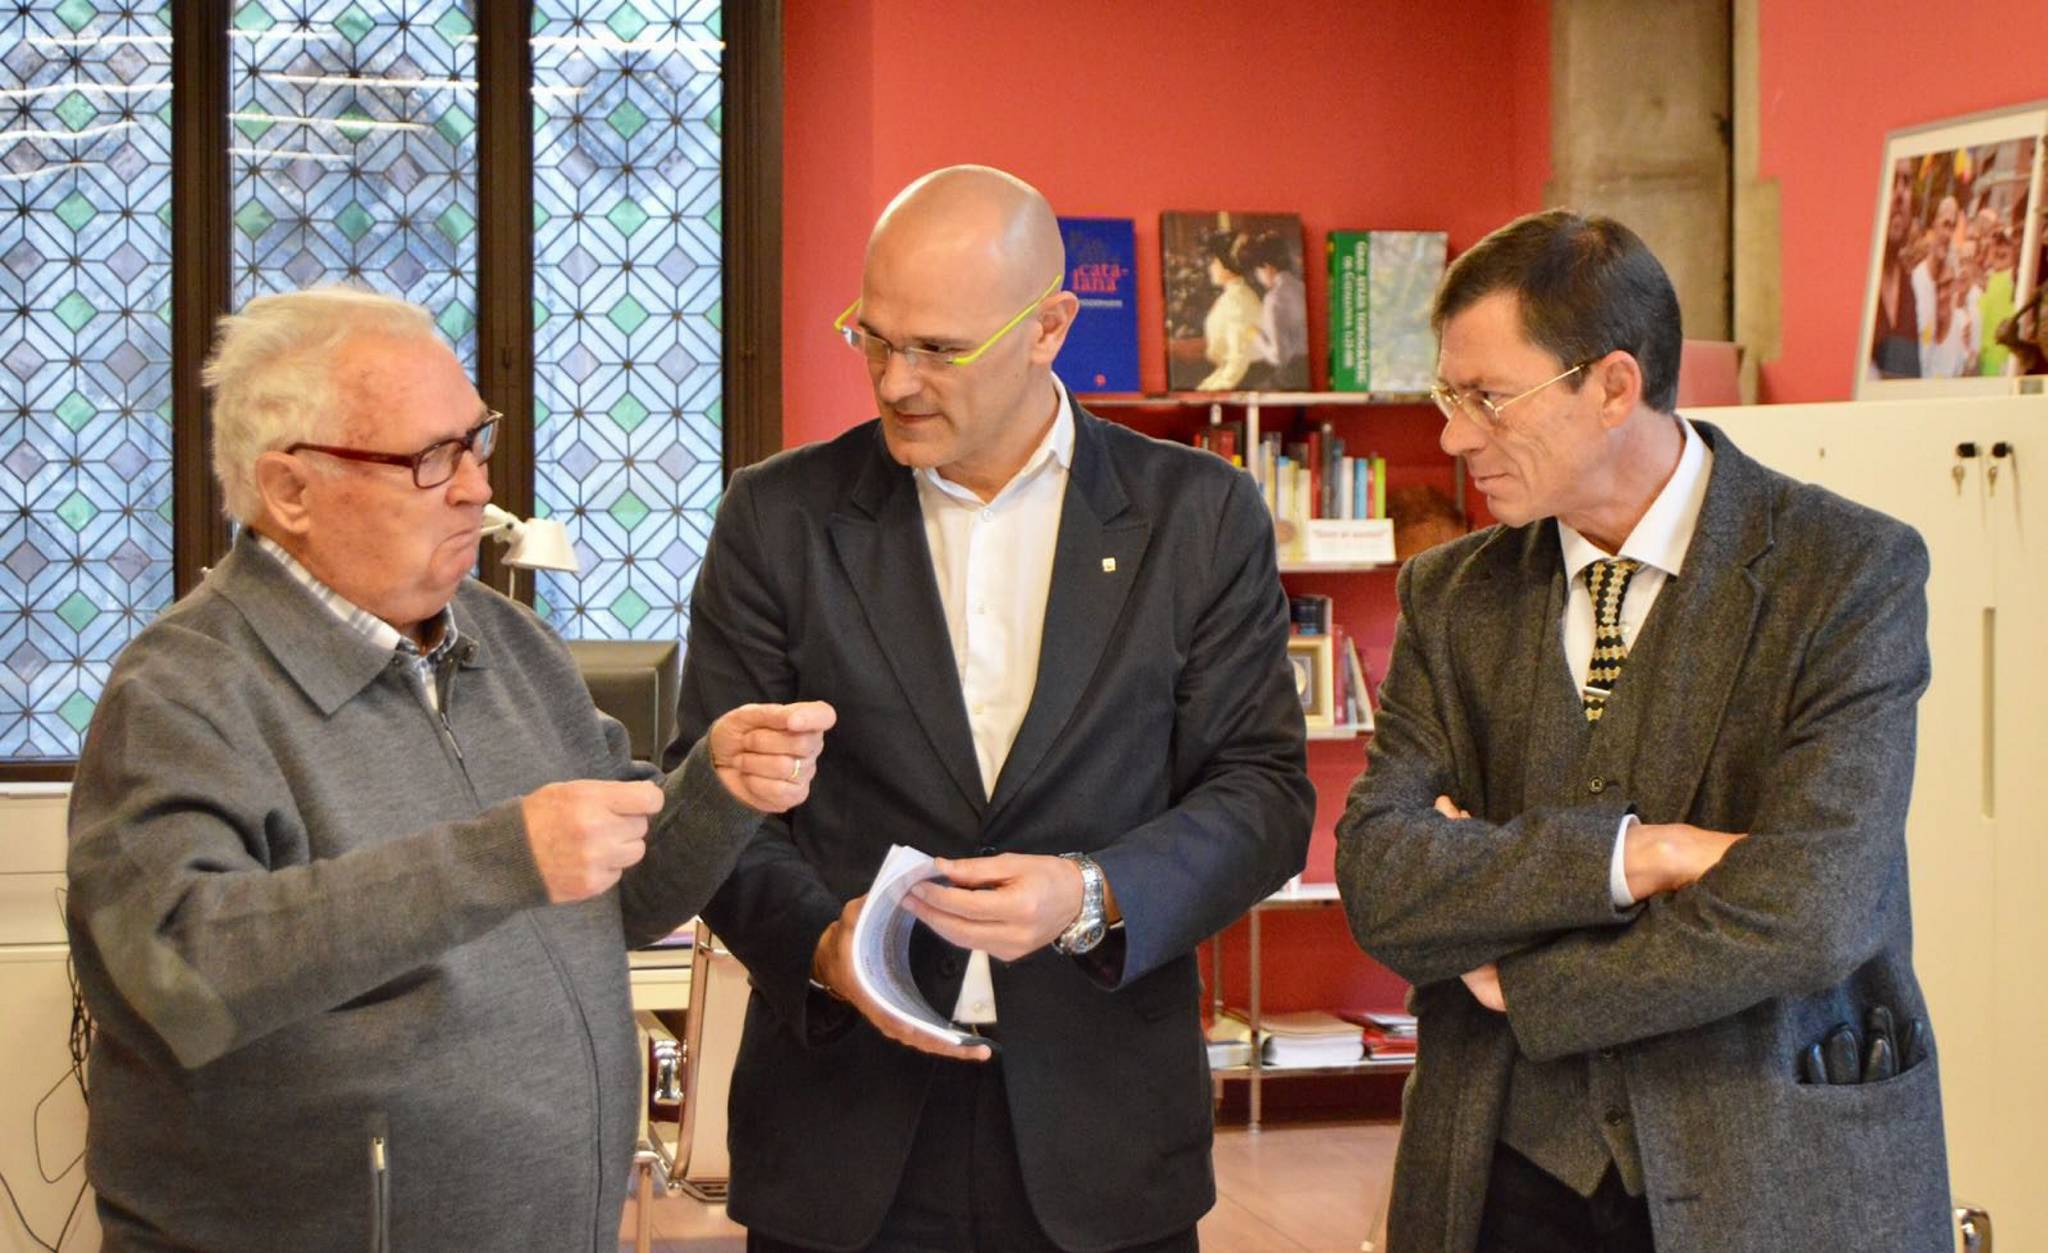 Raül Romeva, met with members of the family of Vicente Santolaria Escrich, who disappeared during Franco's dictatorship